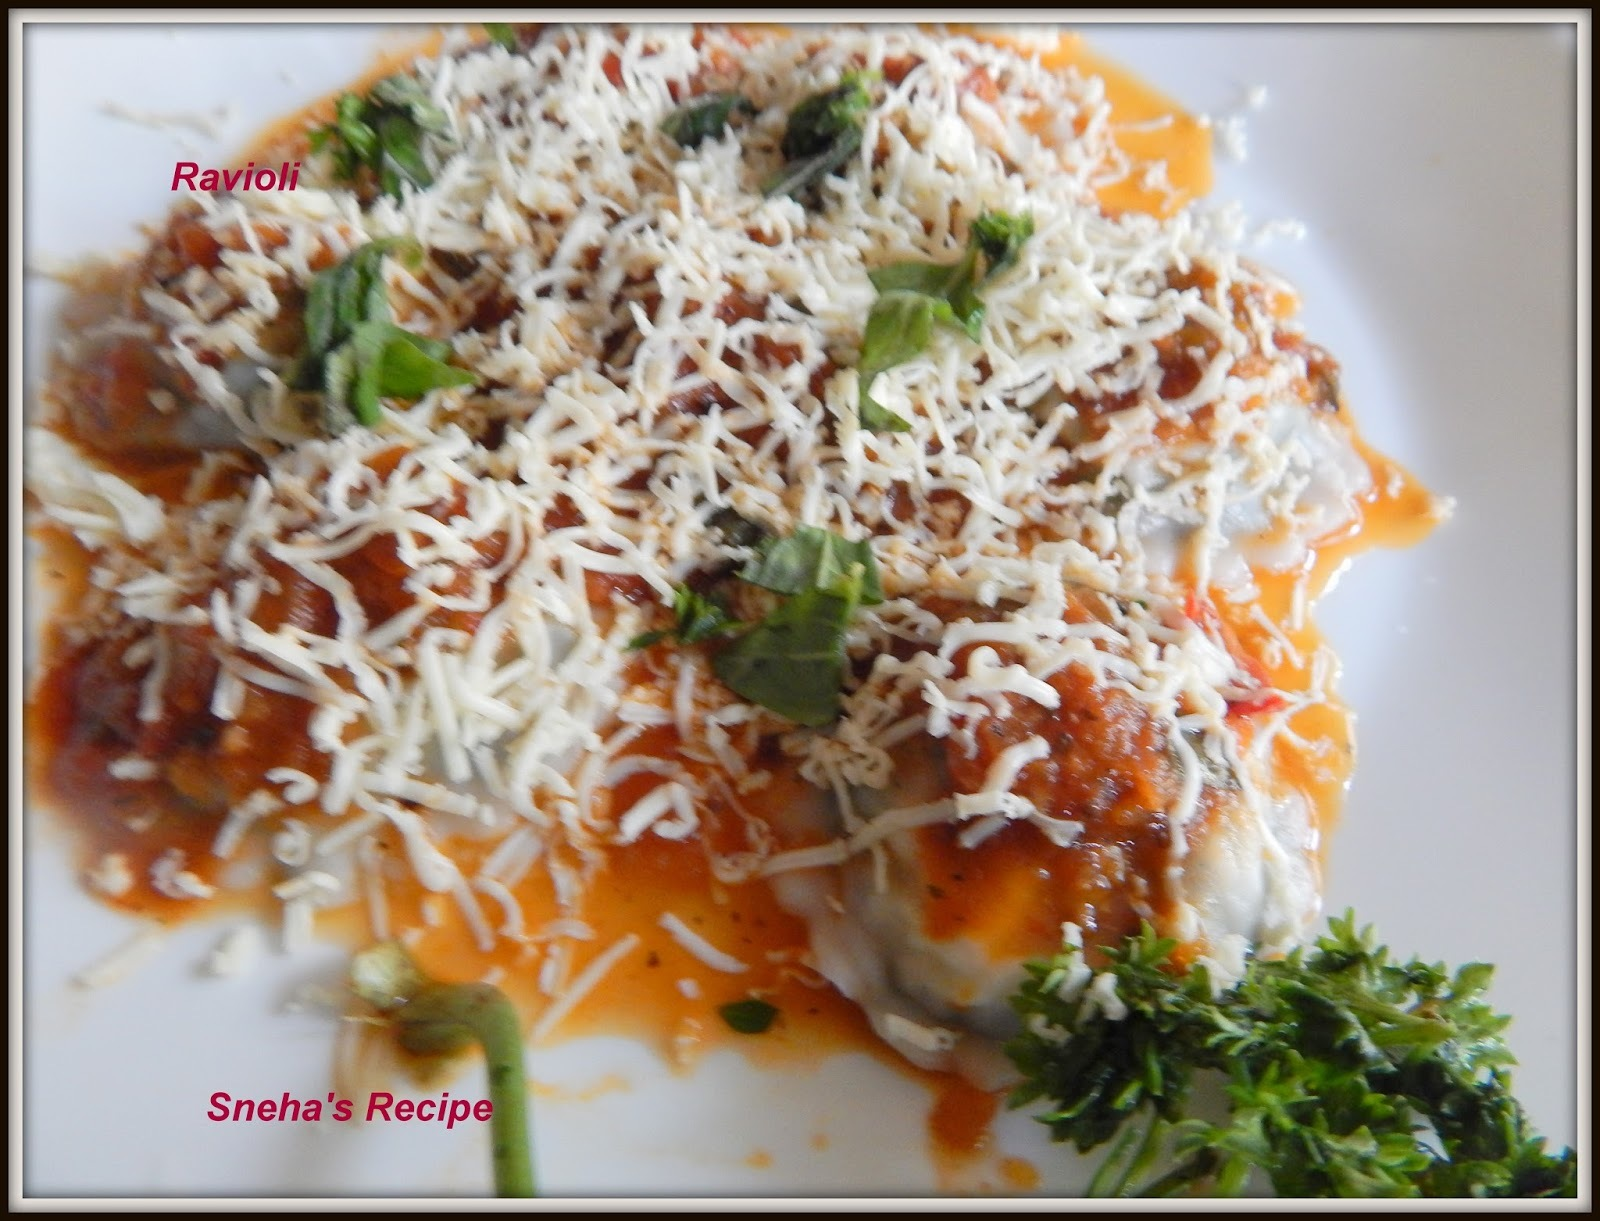 Homemade Ravioli - Stuffed with Spinach and Cottage Cheese in Roasted Tomato Sauce